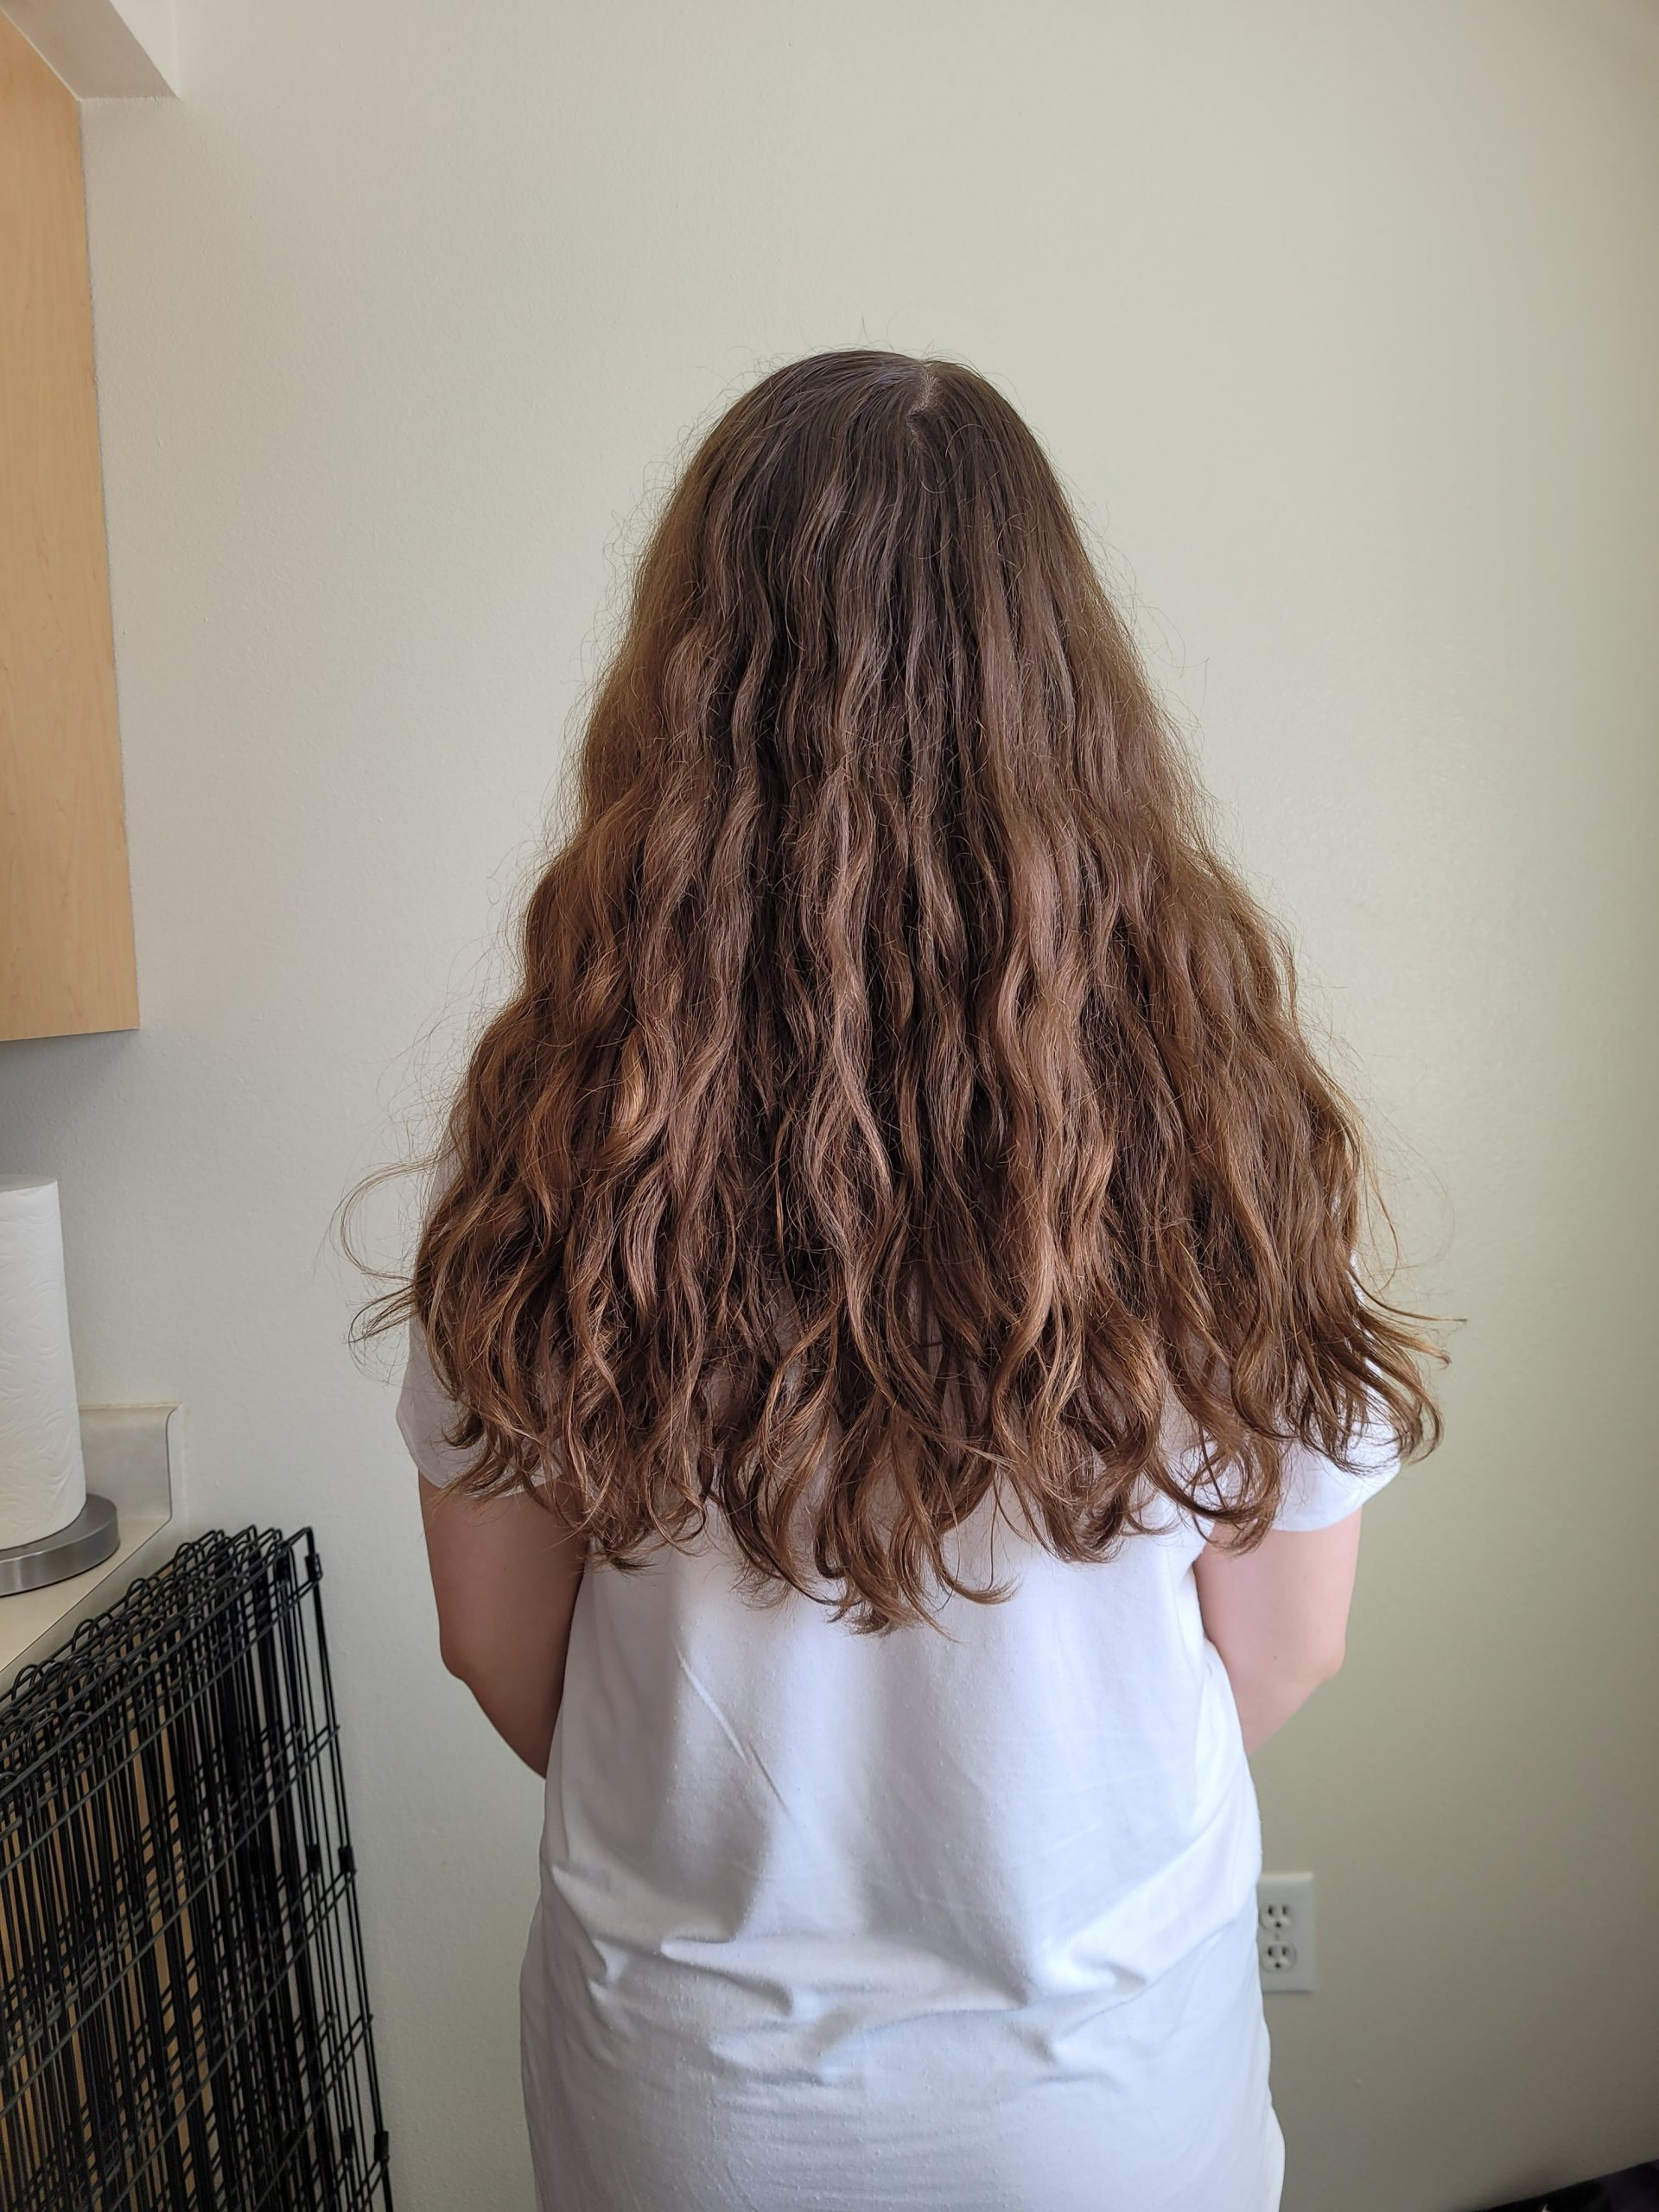 14in long 4in thick Soft curls Auburn brown hair